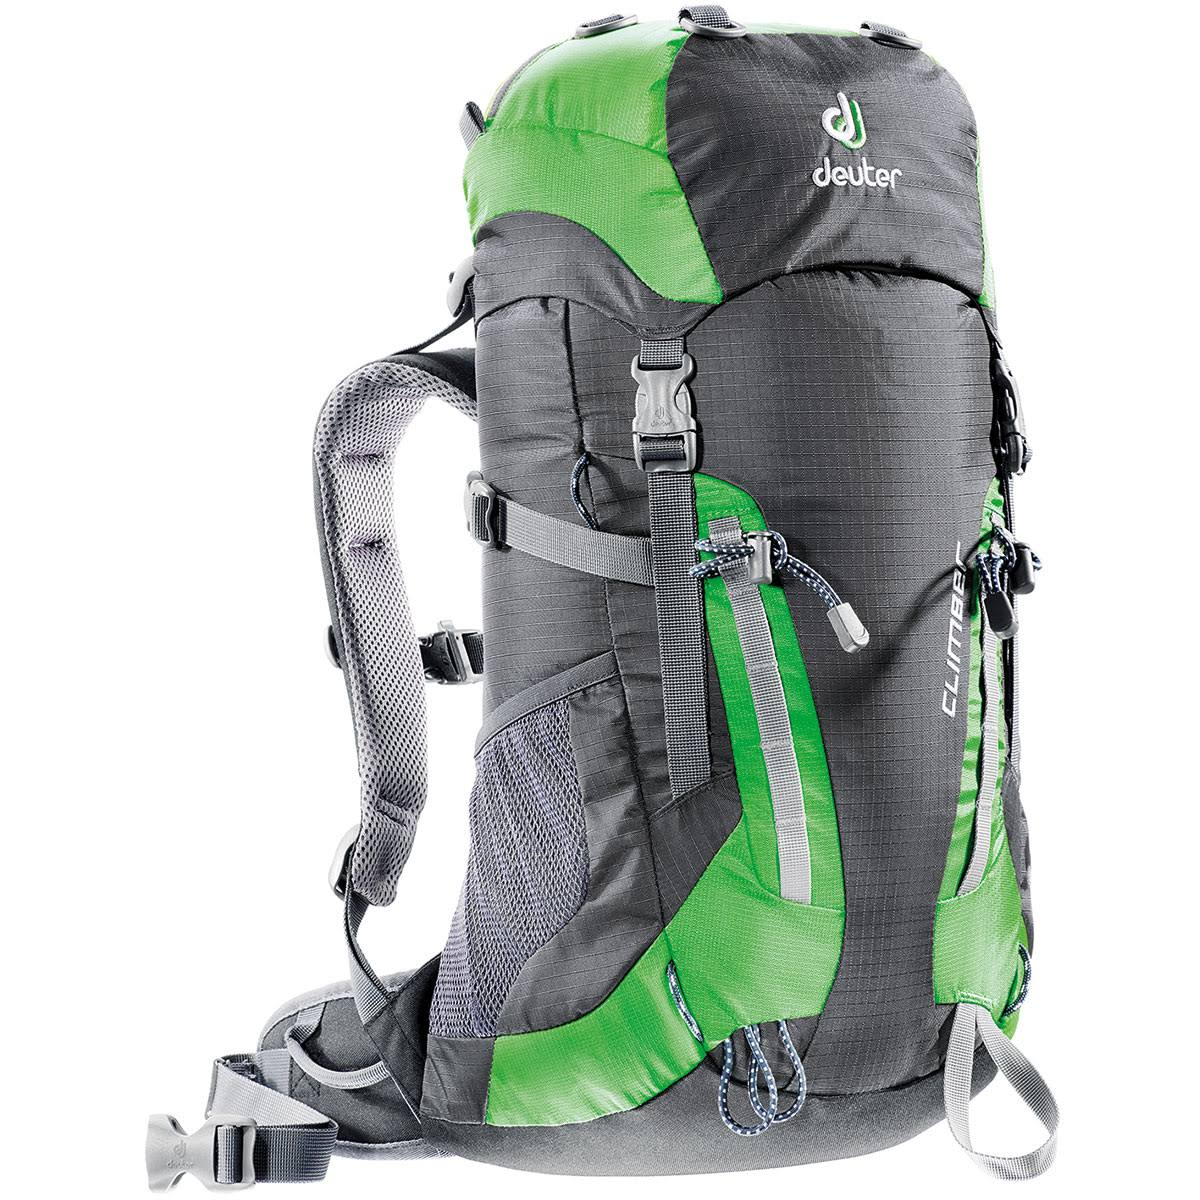 Deuter Climber Backpack - Anthracite/Spring